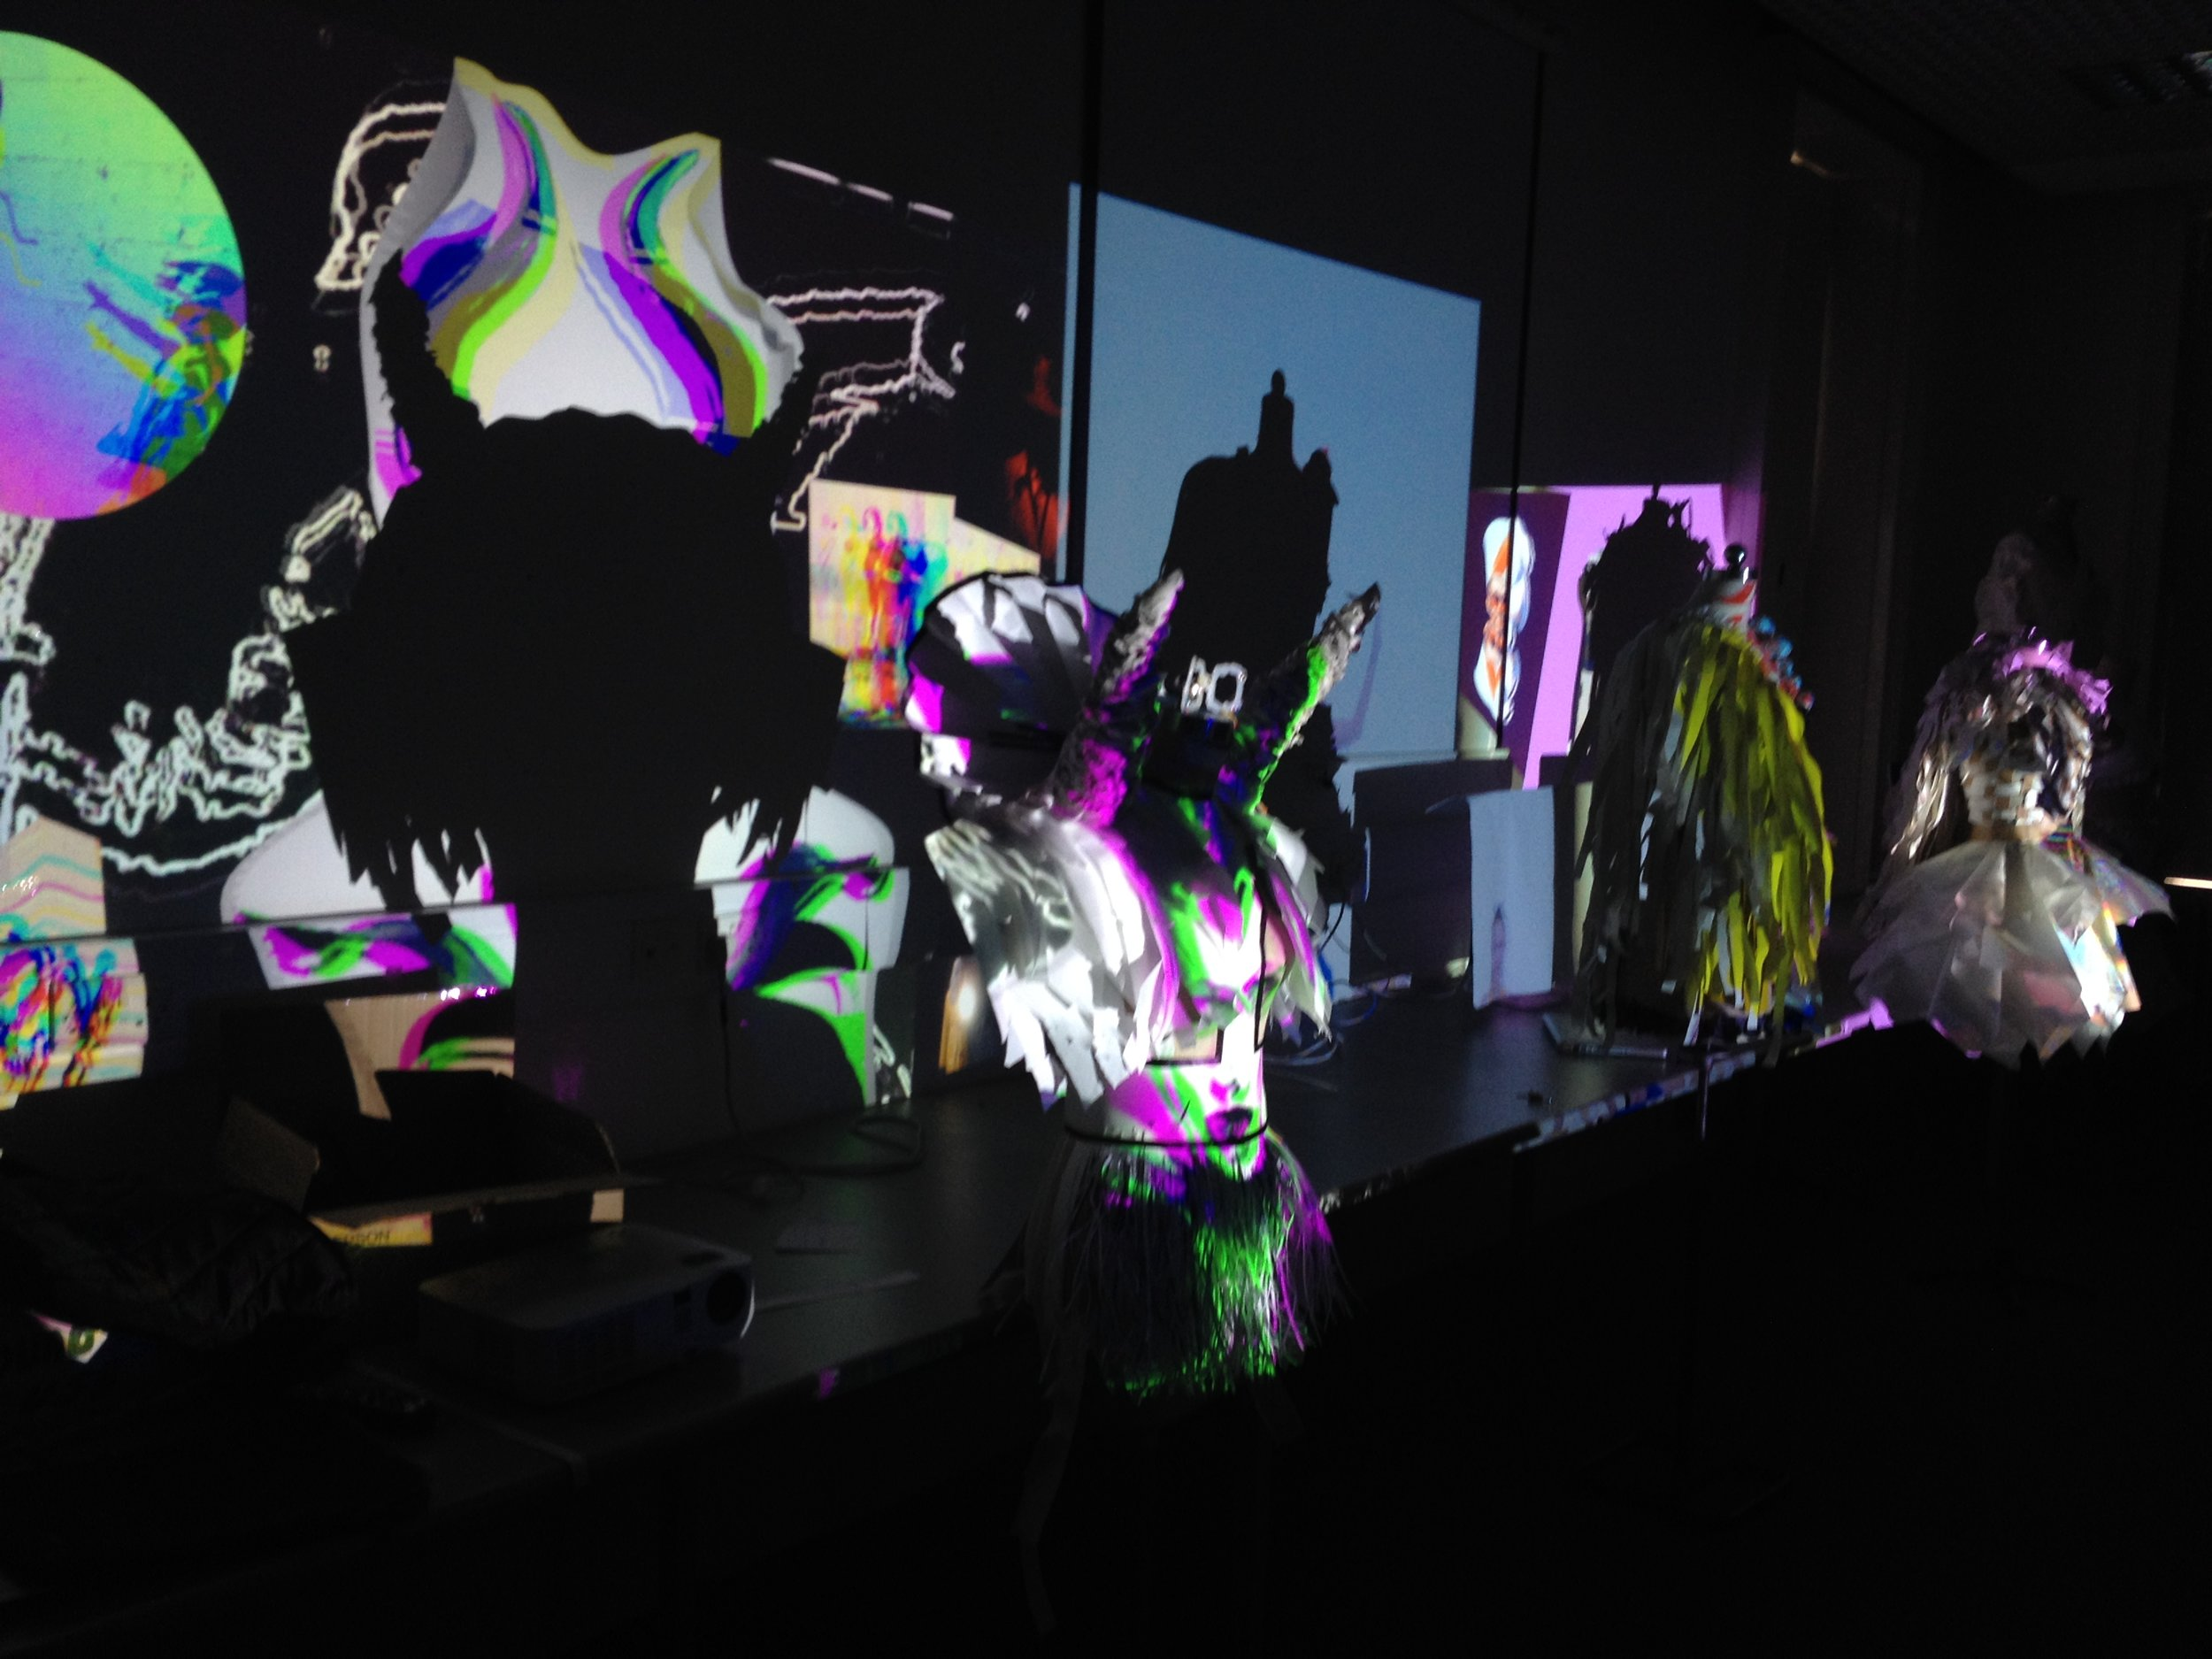 Projection mapping with students at LSAD, June 2019.